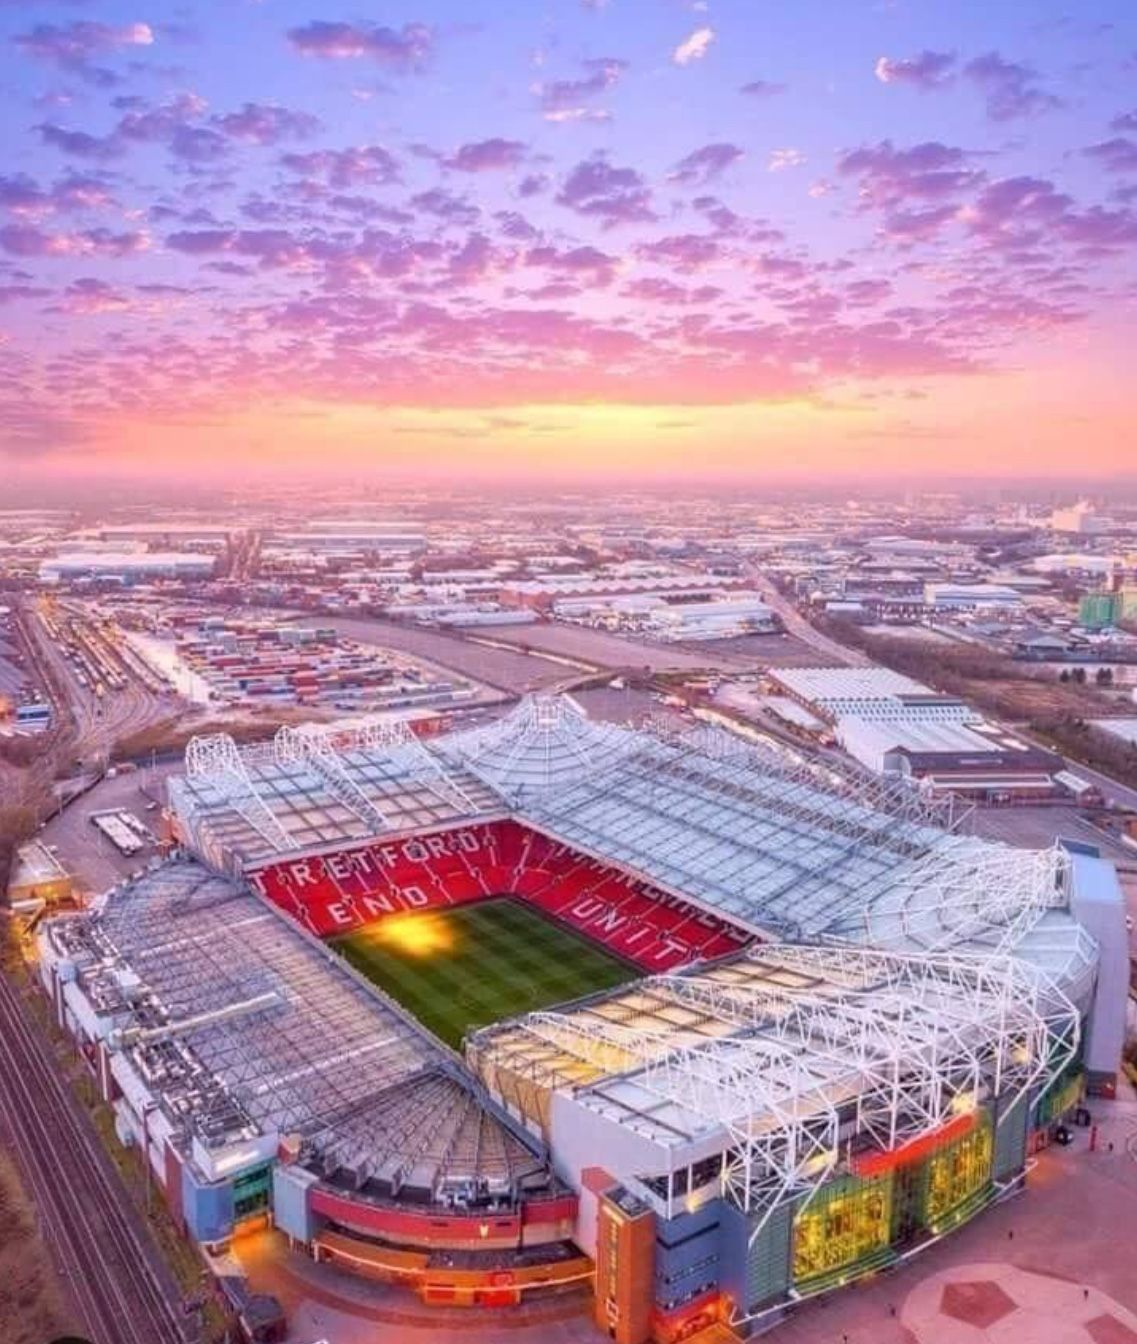 With Images Manchester United Wallpaper Manchester United Manchester United Stadium